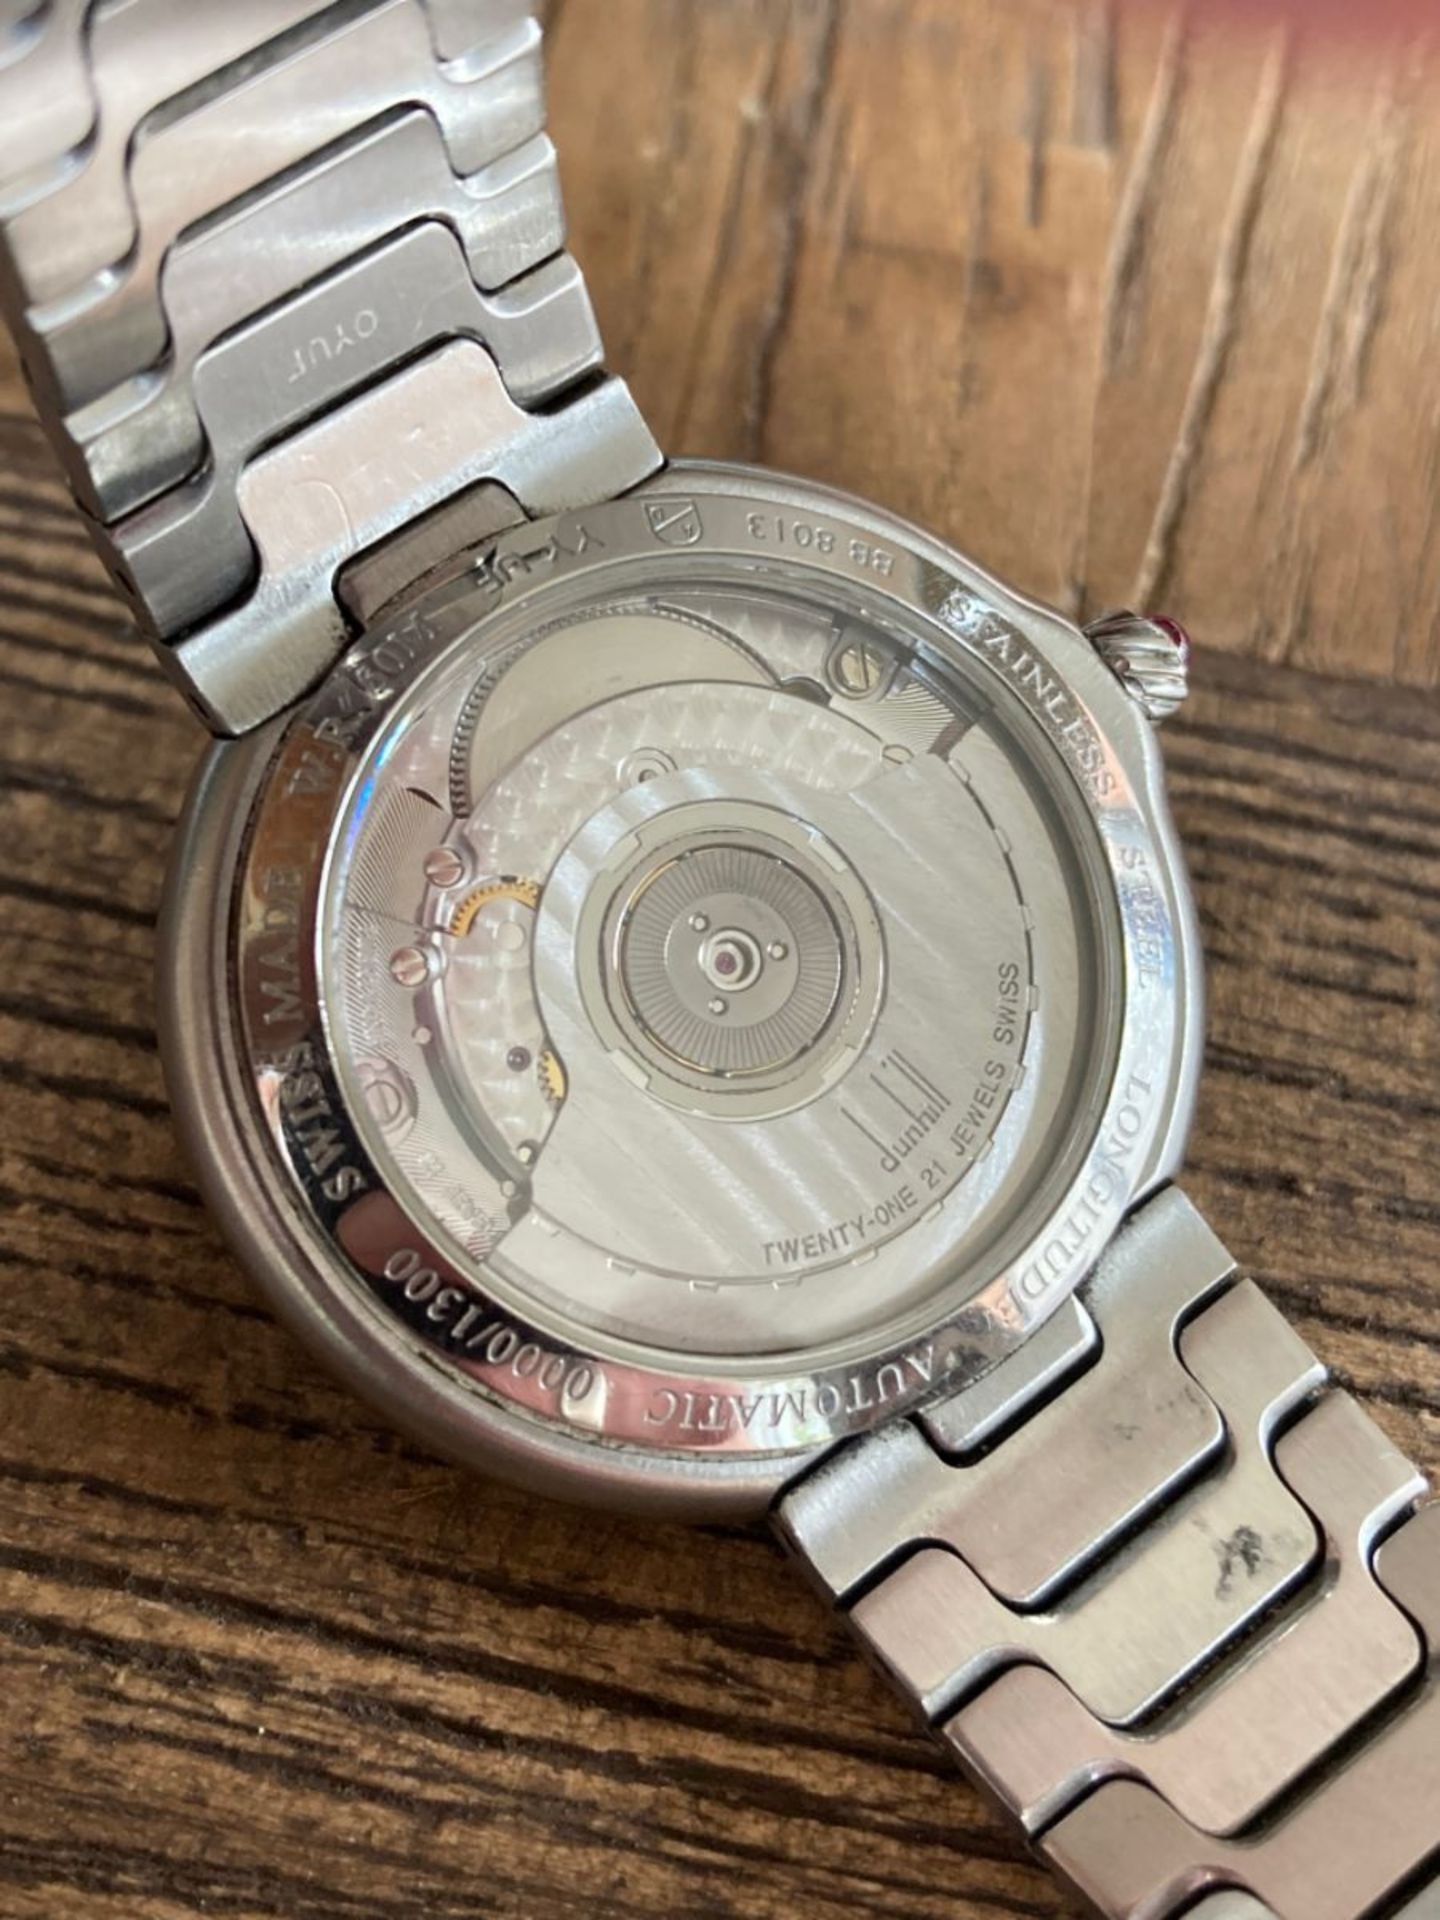 ALFRED DUNHILL WATCH - Image 4 of 6